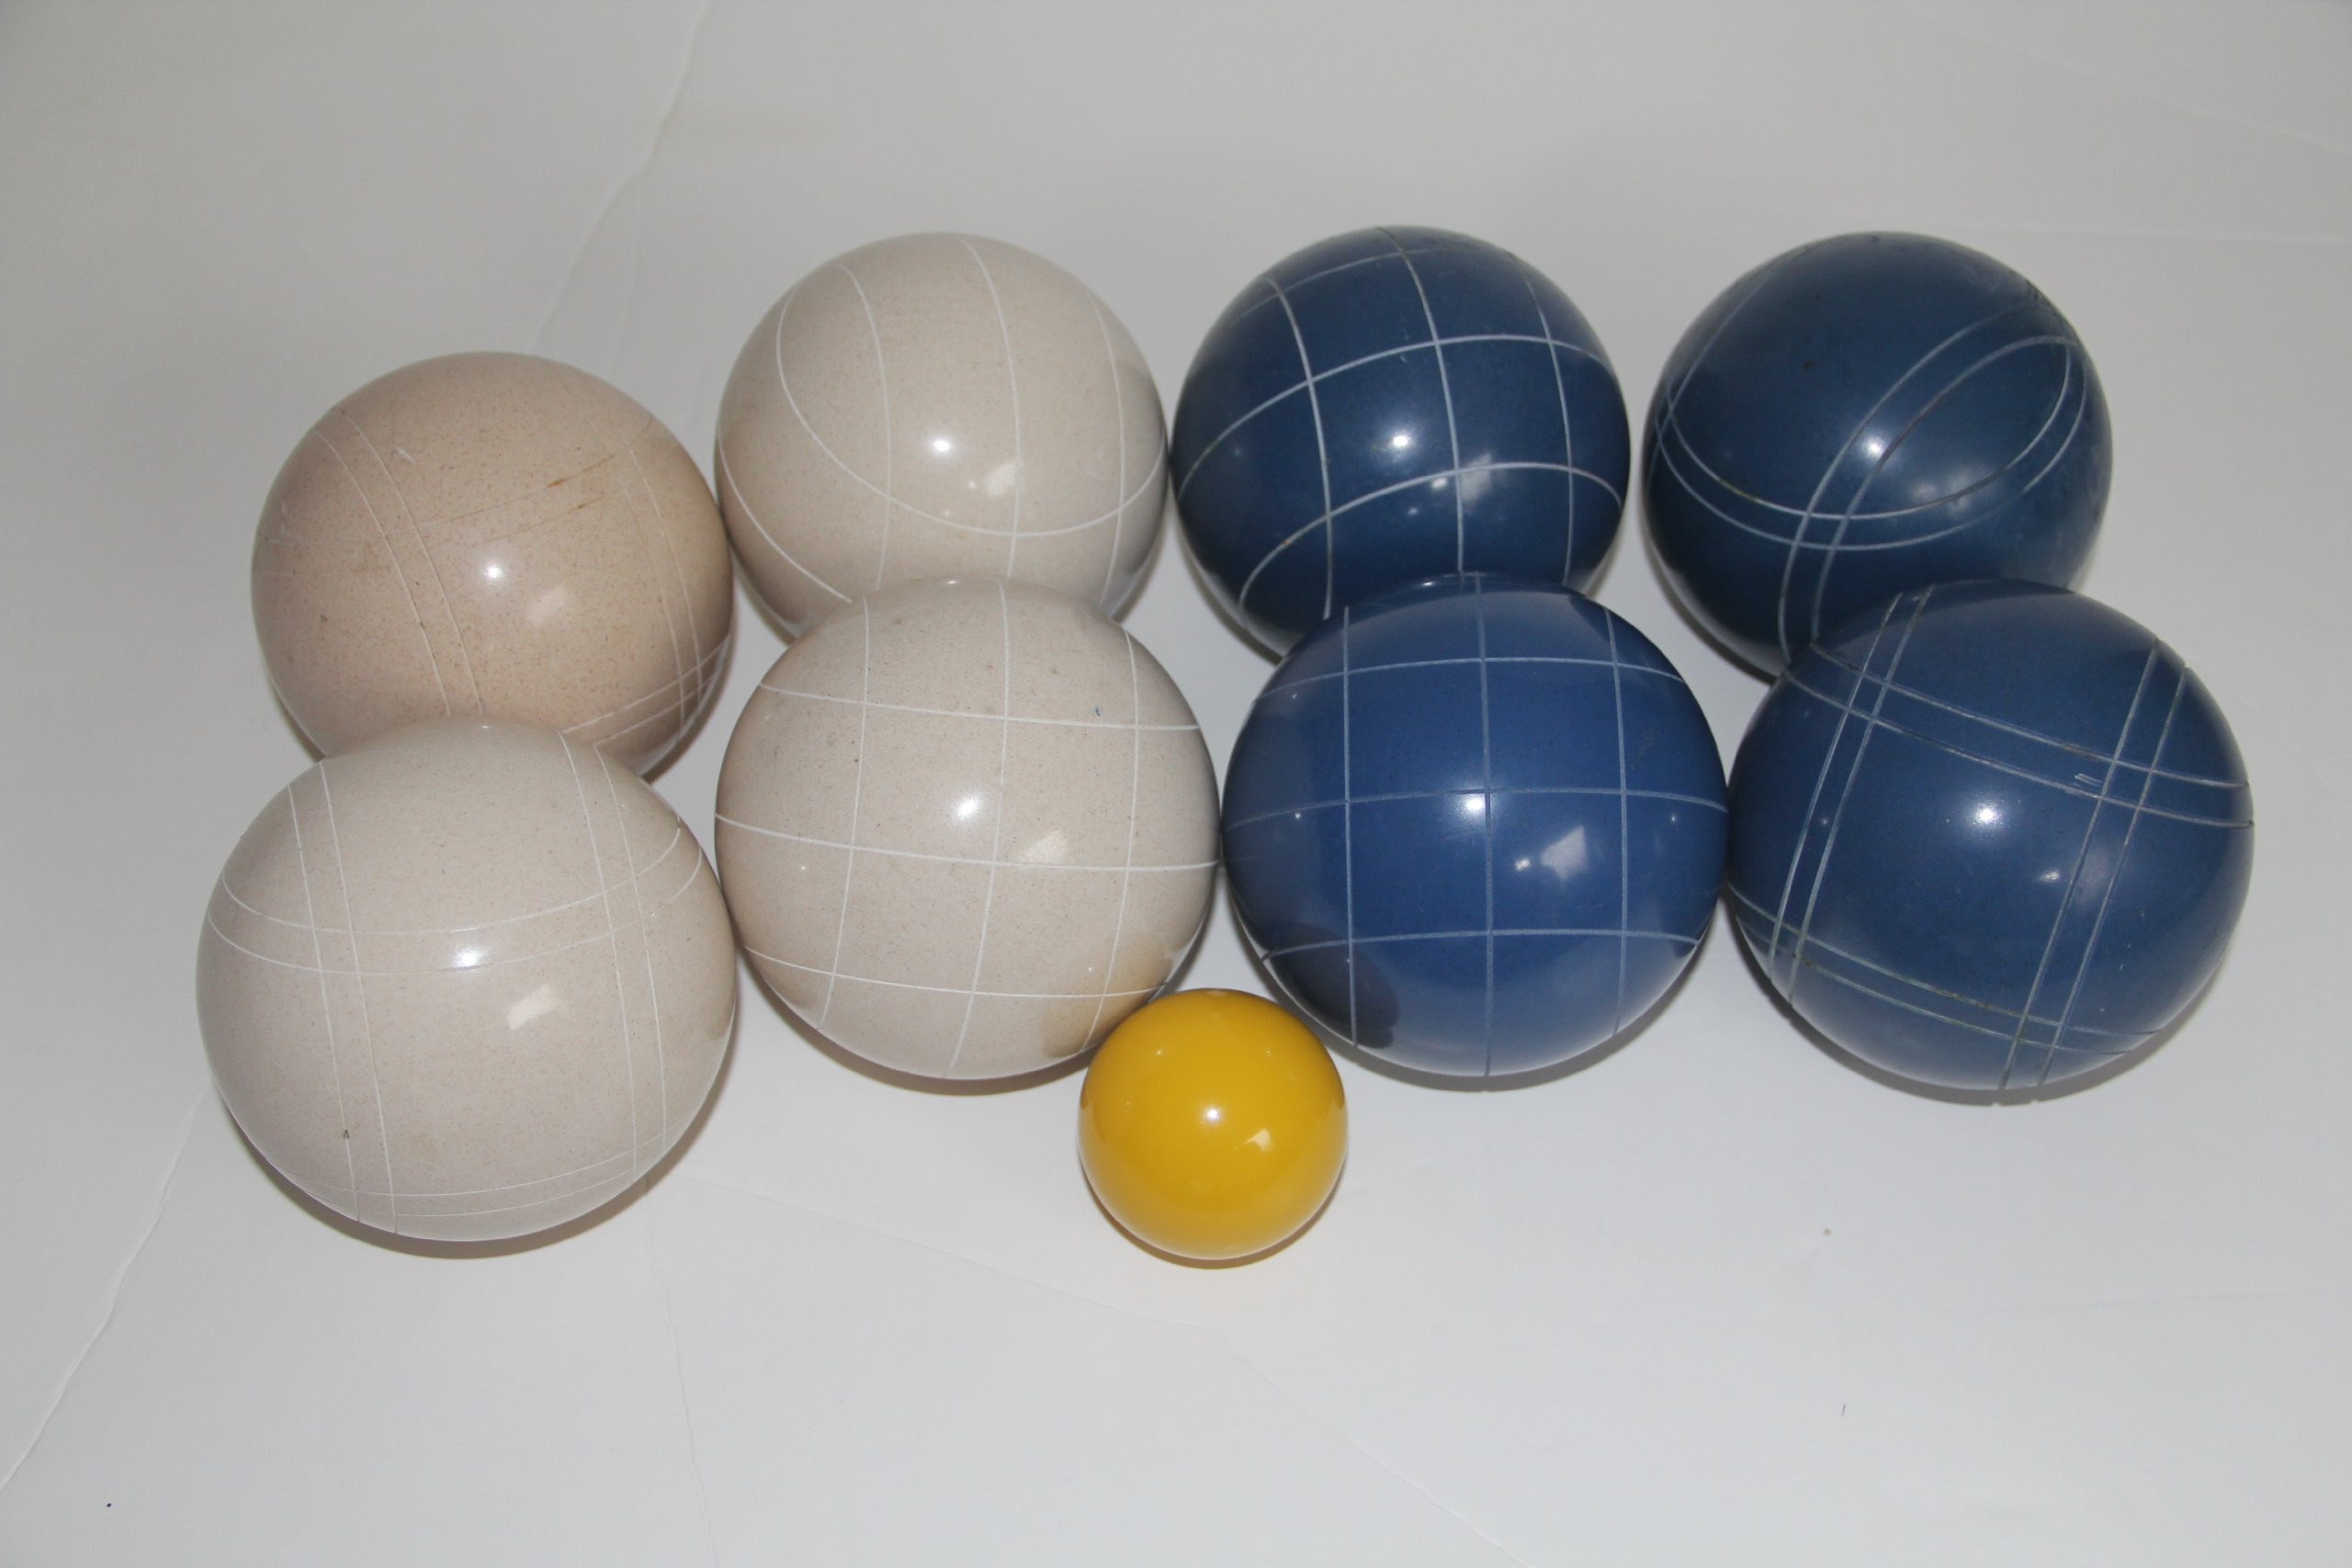 Premium Quality Epco Tournament Set - 110mm Blue and White Bocce Balls - No BAG Option [Toy] by Epco